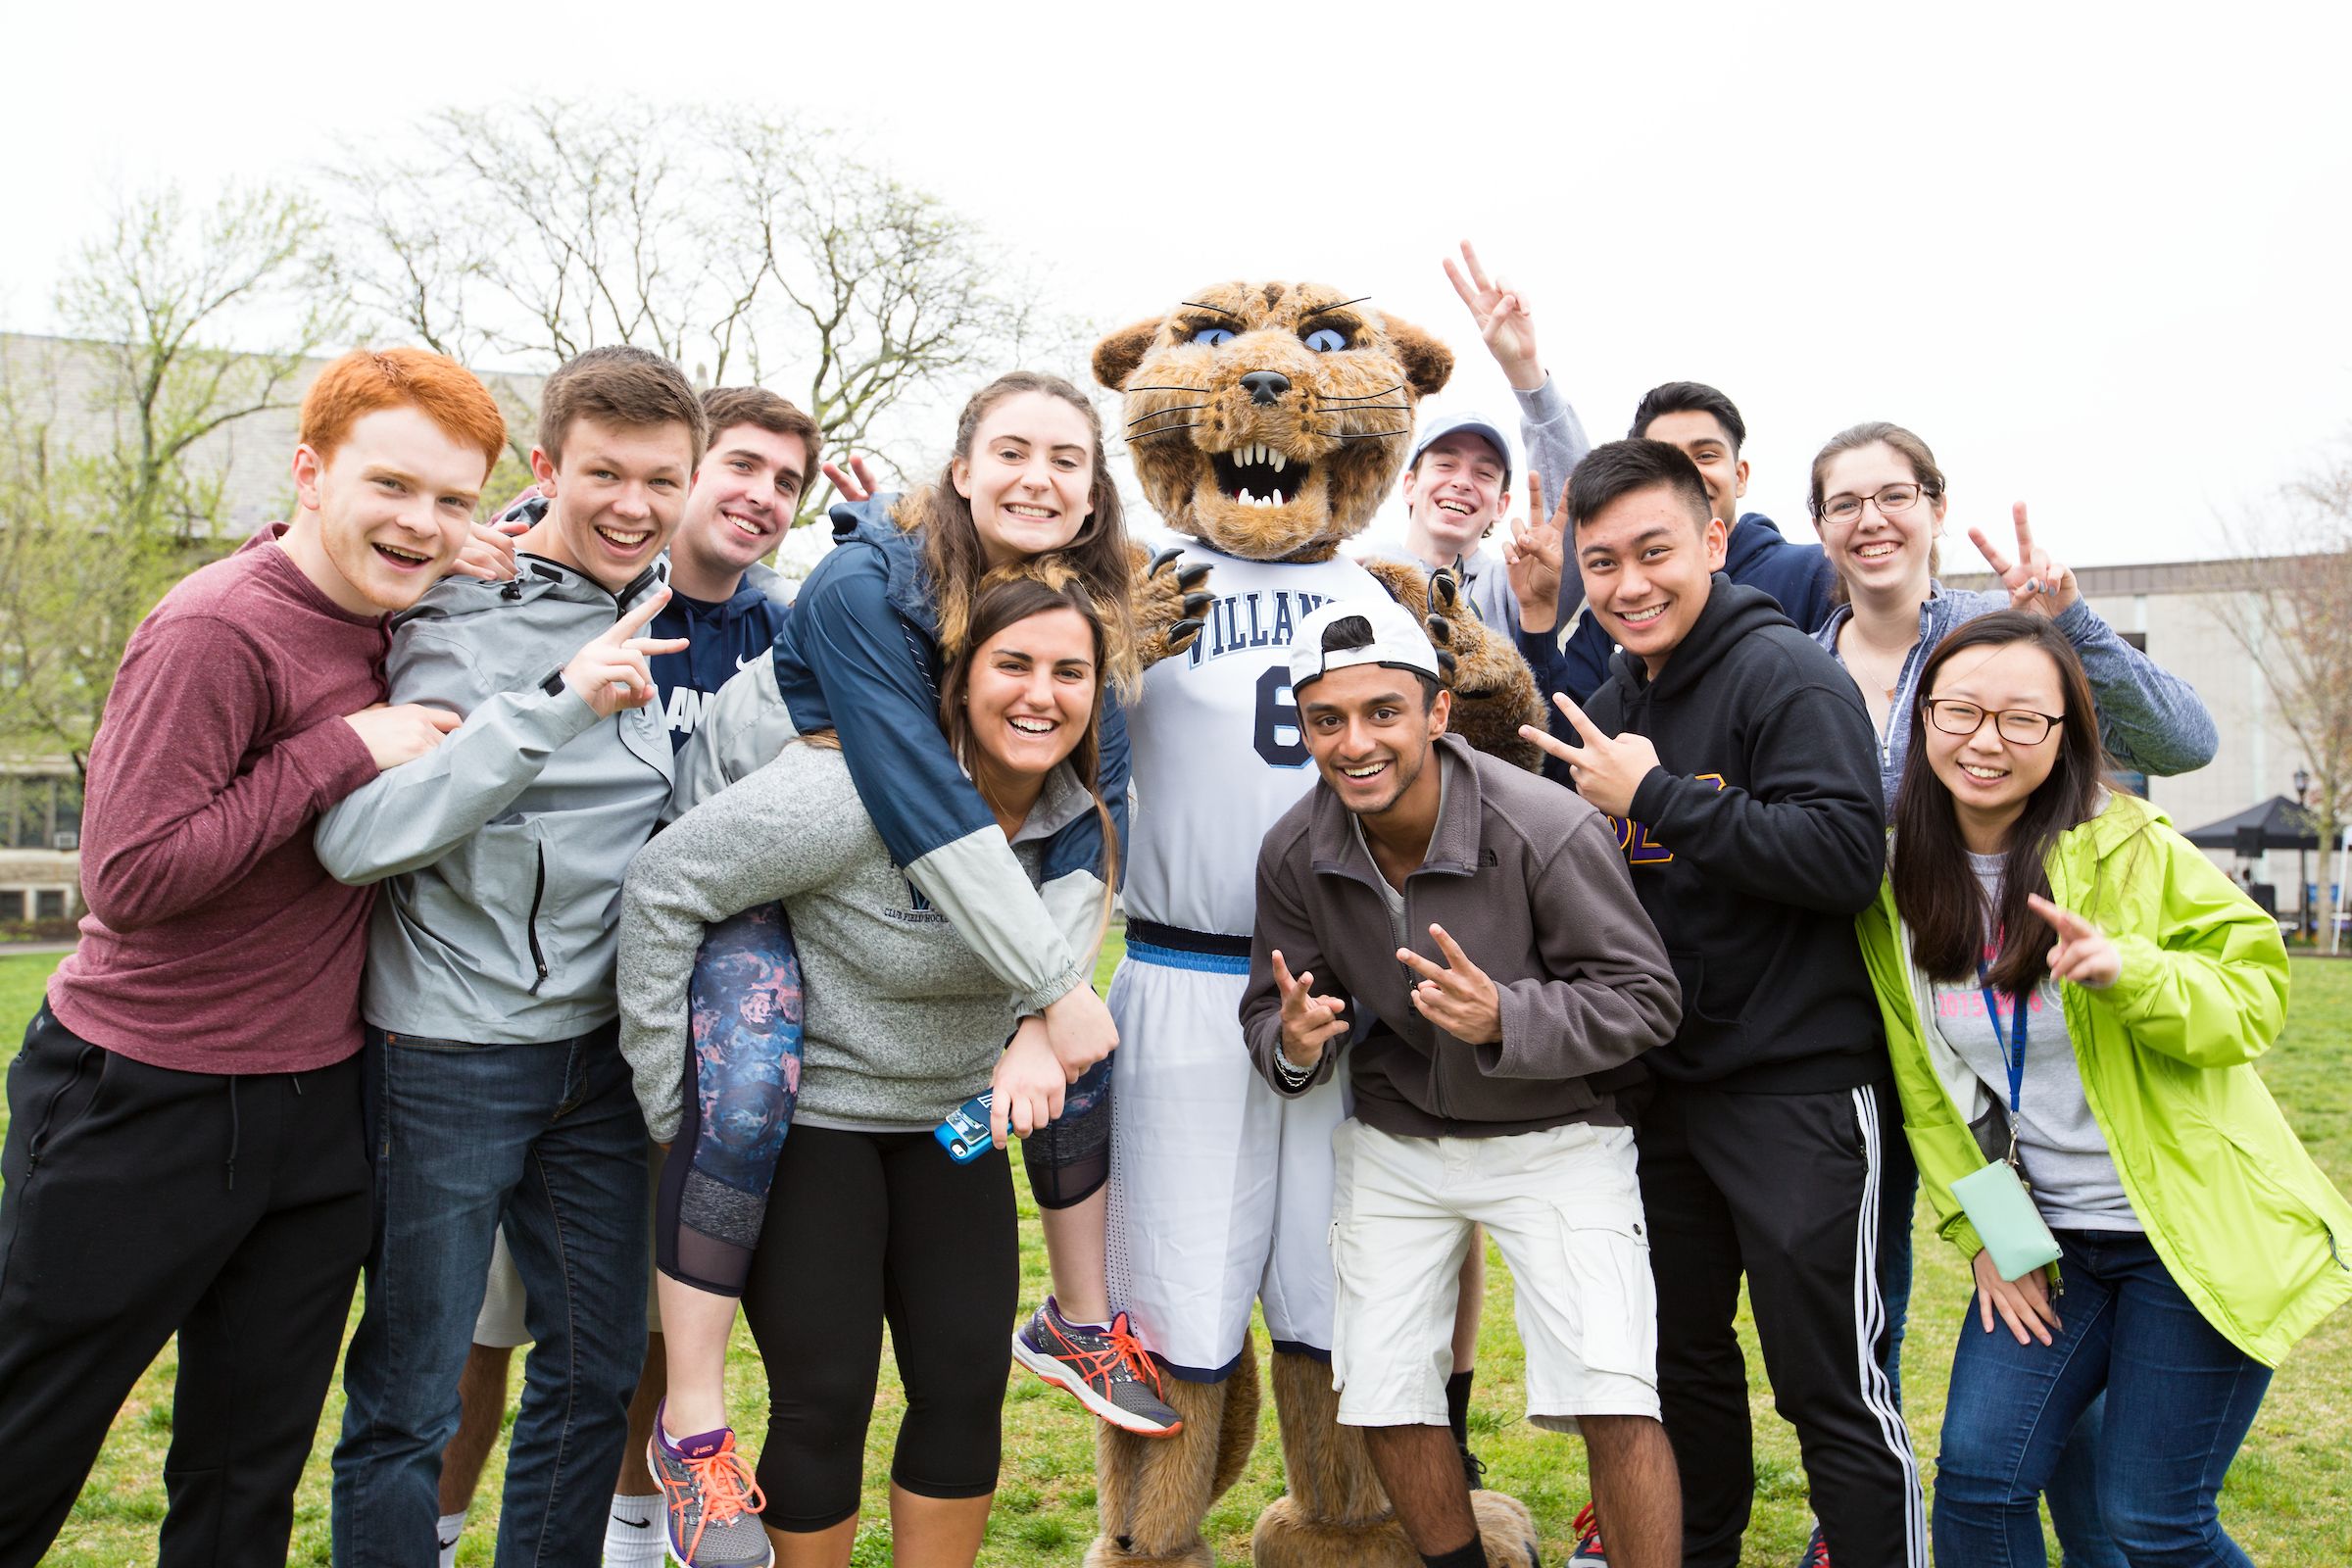 Villanova students with the Wildcat